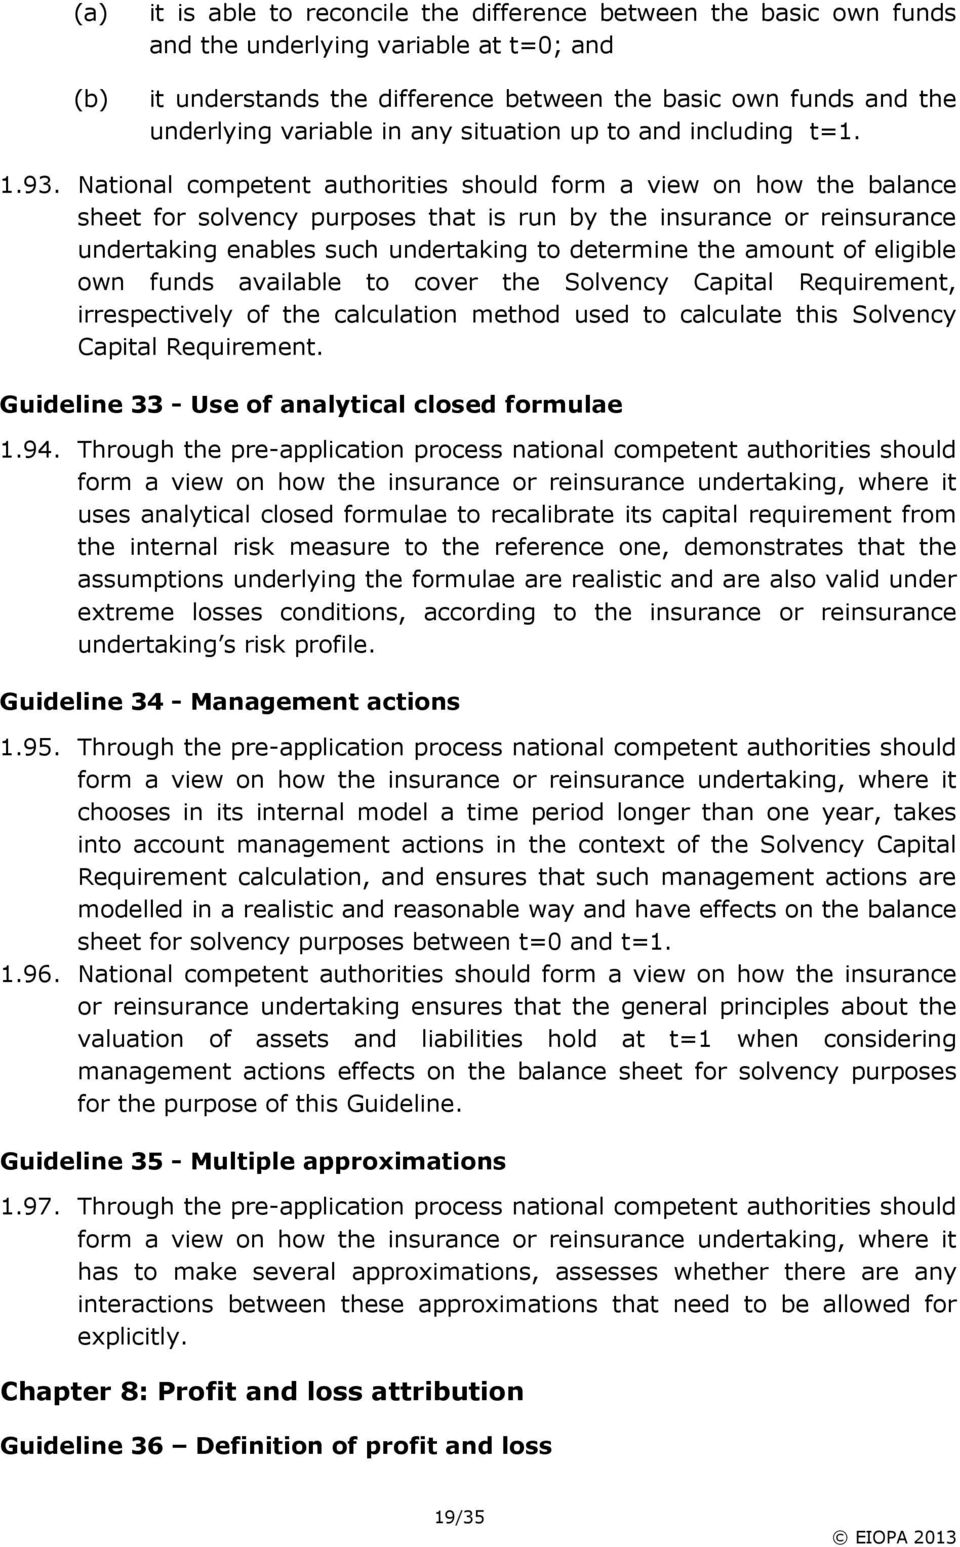 National competent authorities should form a view on how the balance sheet for solvency purposes that is run by the insurance or reinsurance undertaking enables such undertaking to determine the